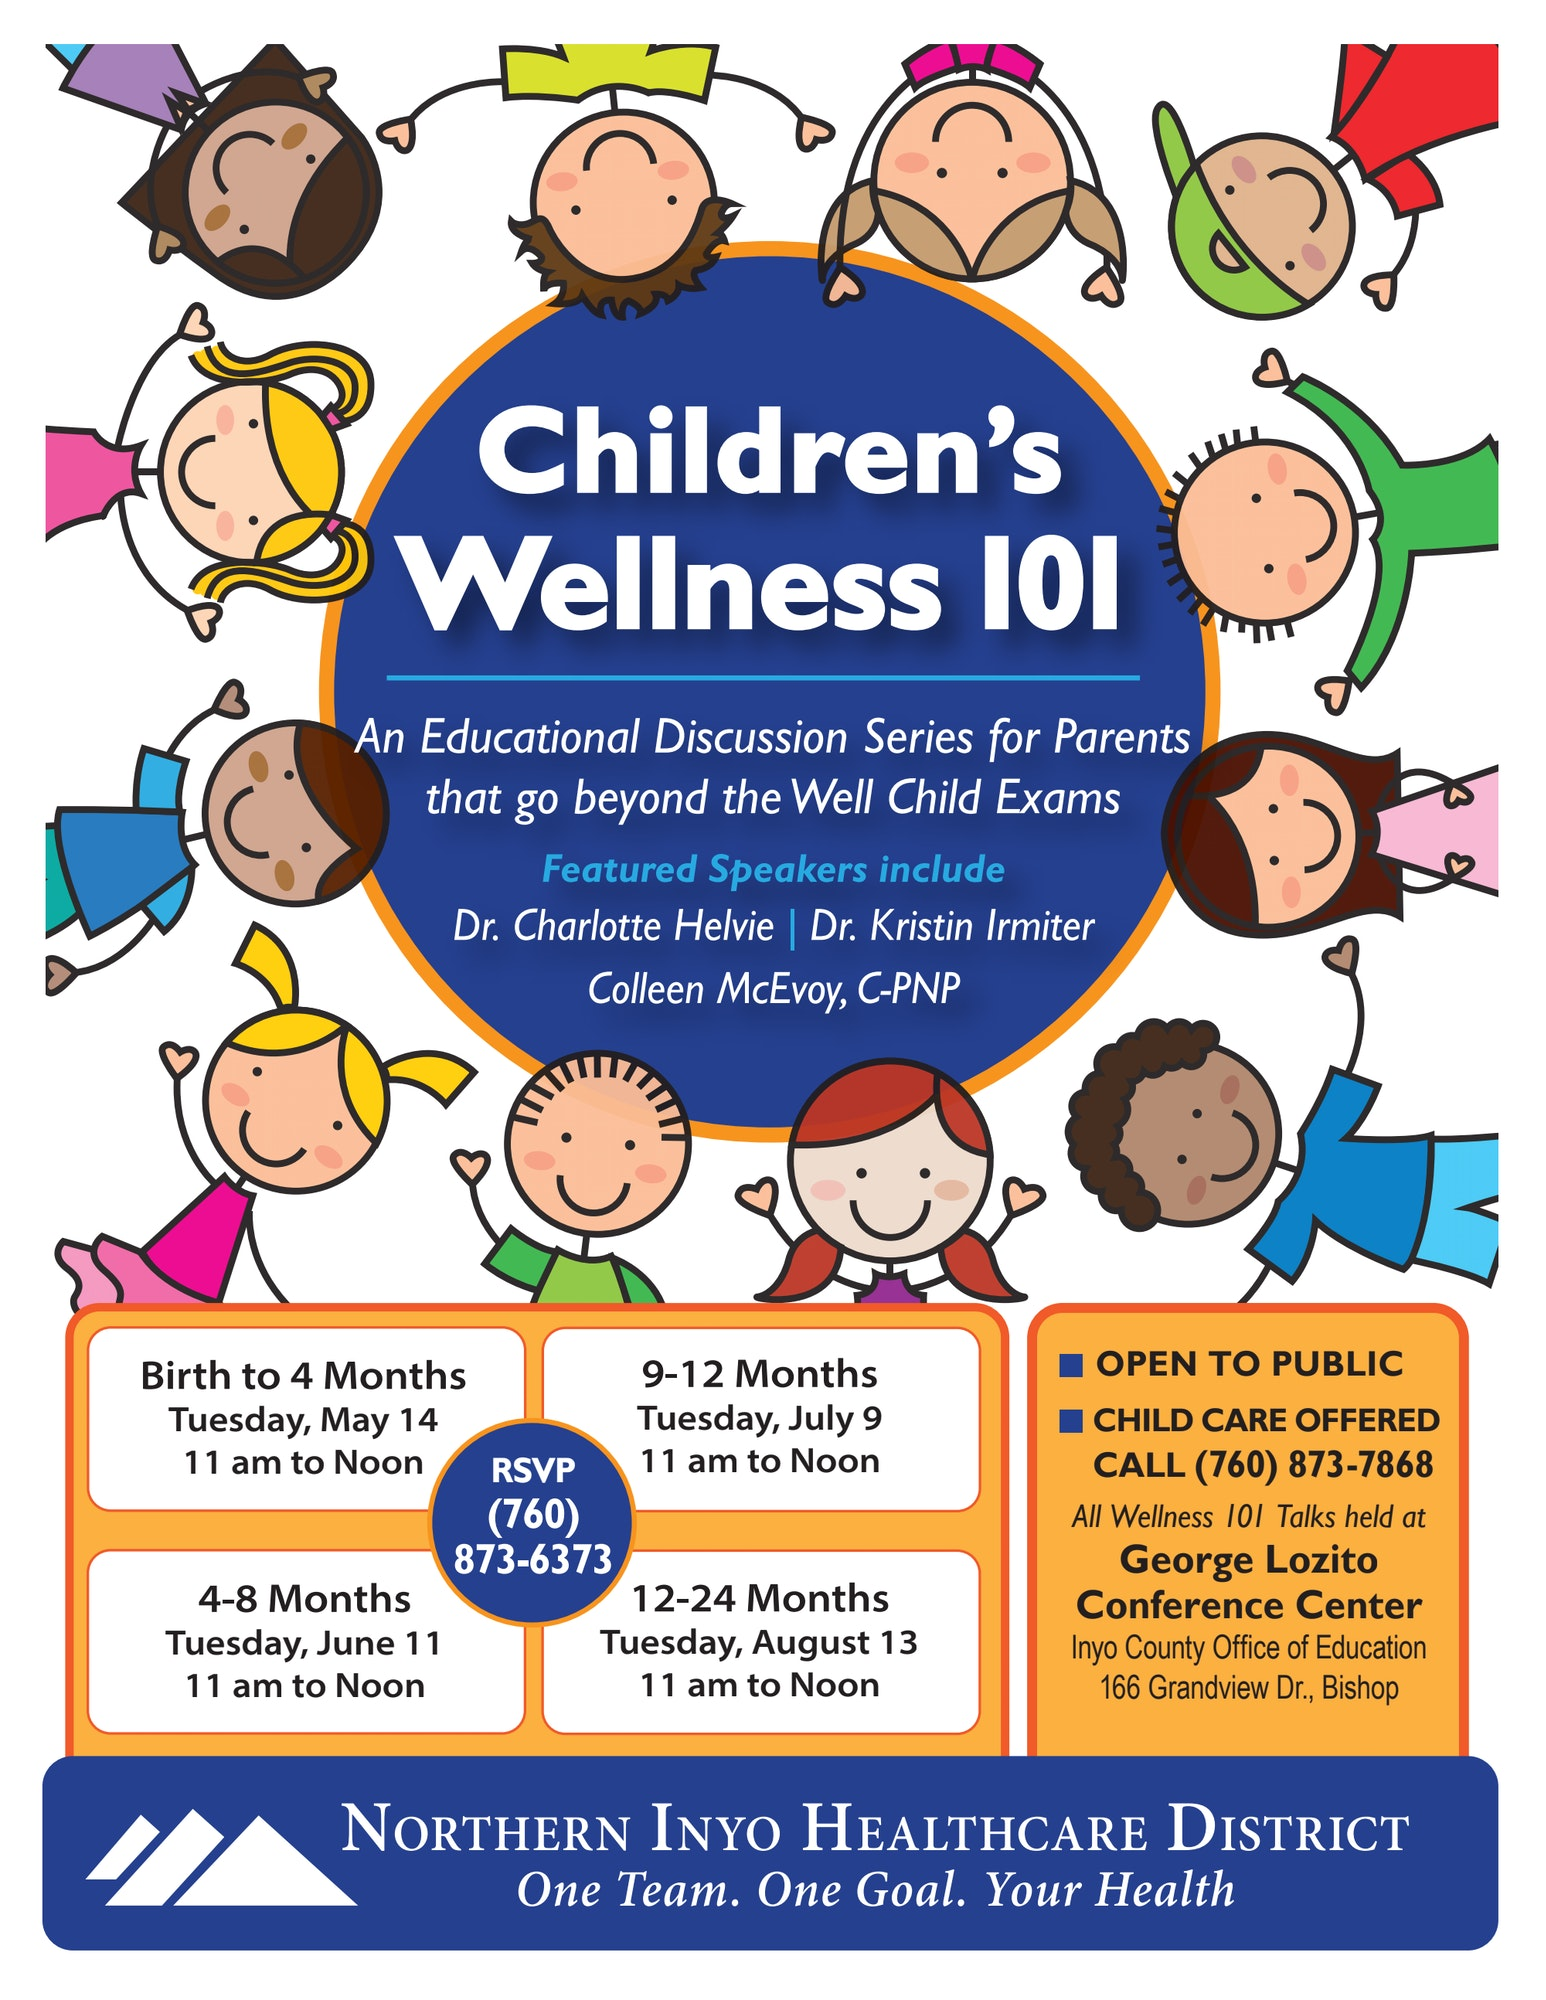 Poster for Children's Wellness 101 Discussion Series